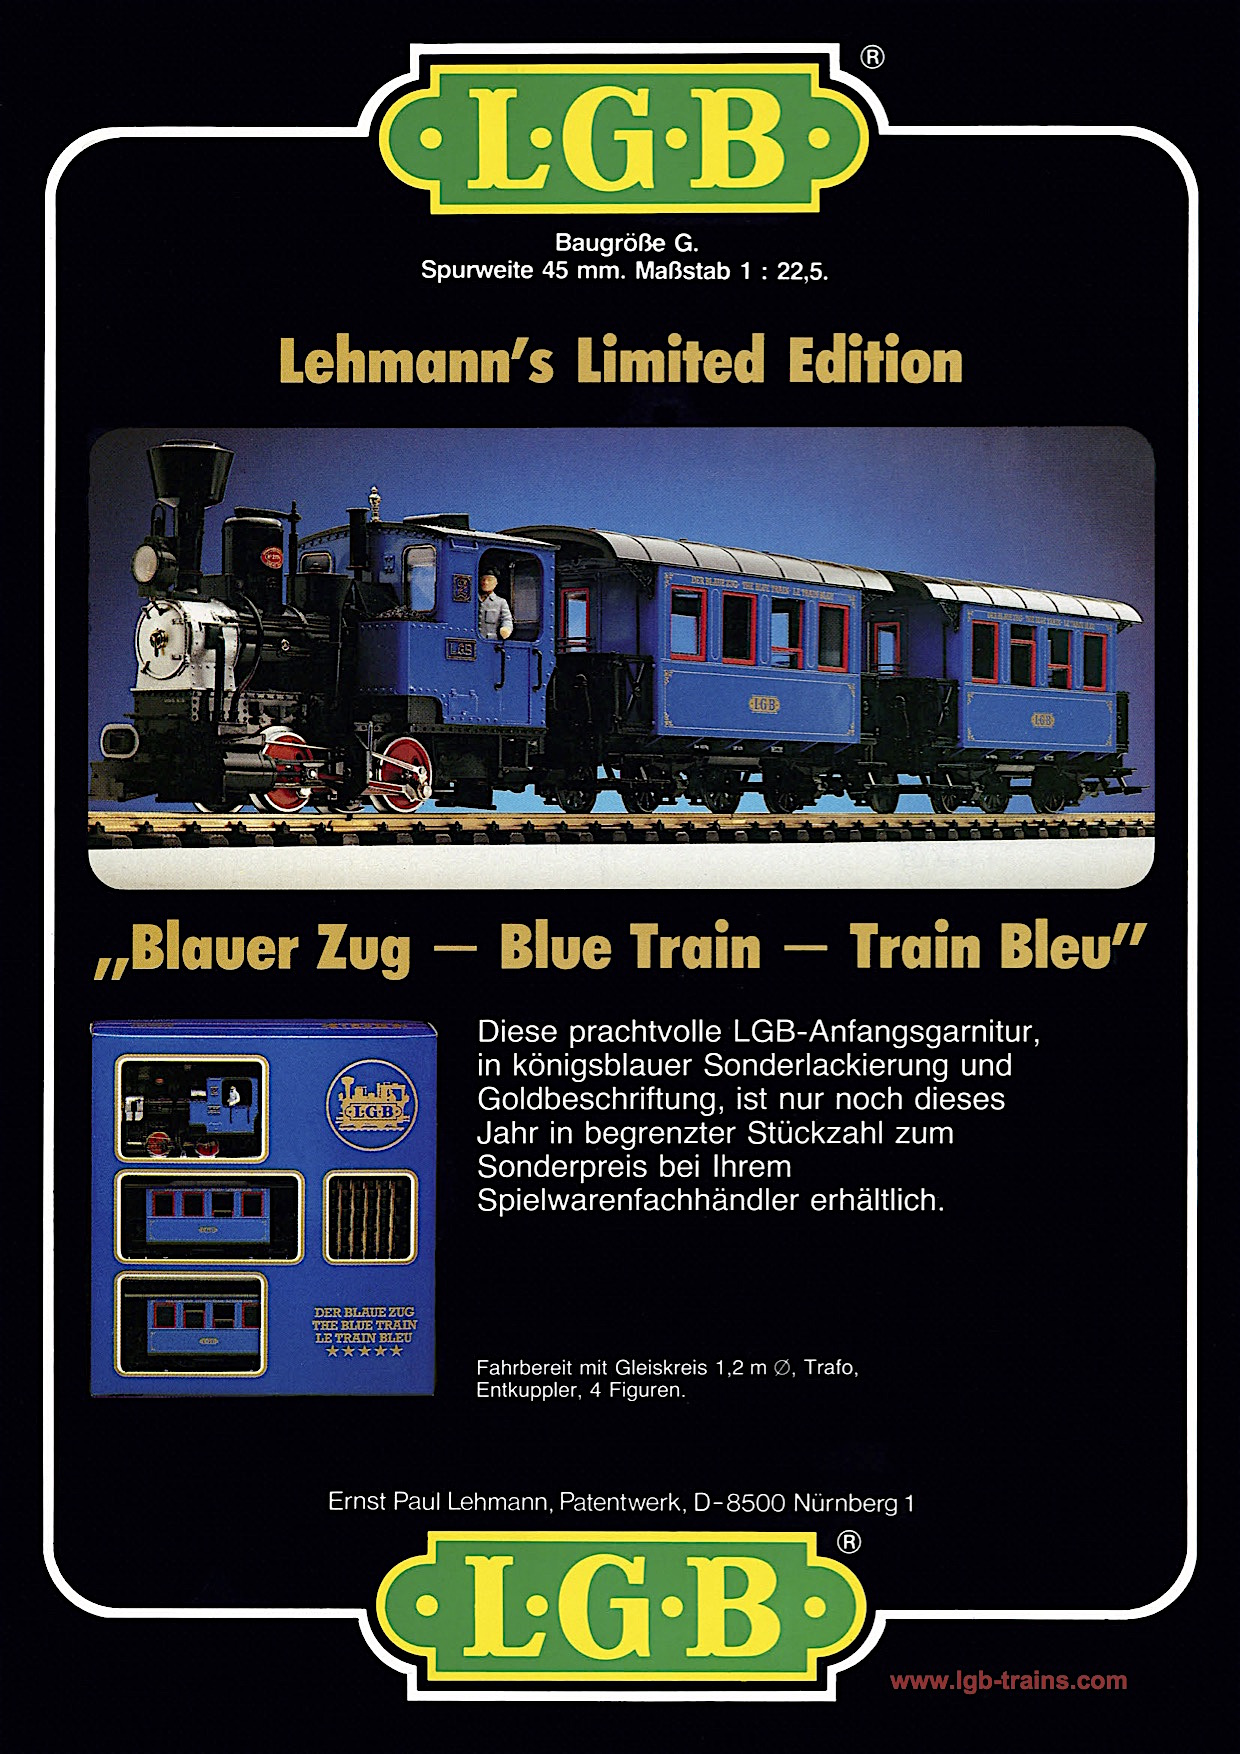 LGB Broschüre (Flyer) 1983 - Blauer Zug (Blue Train)